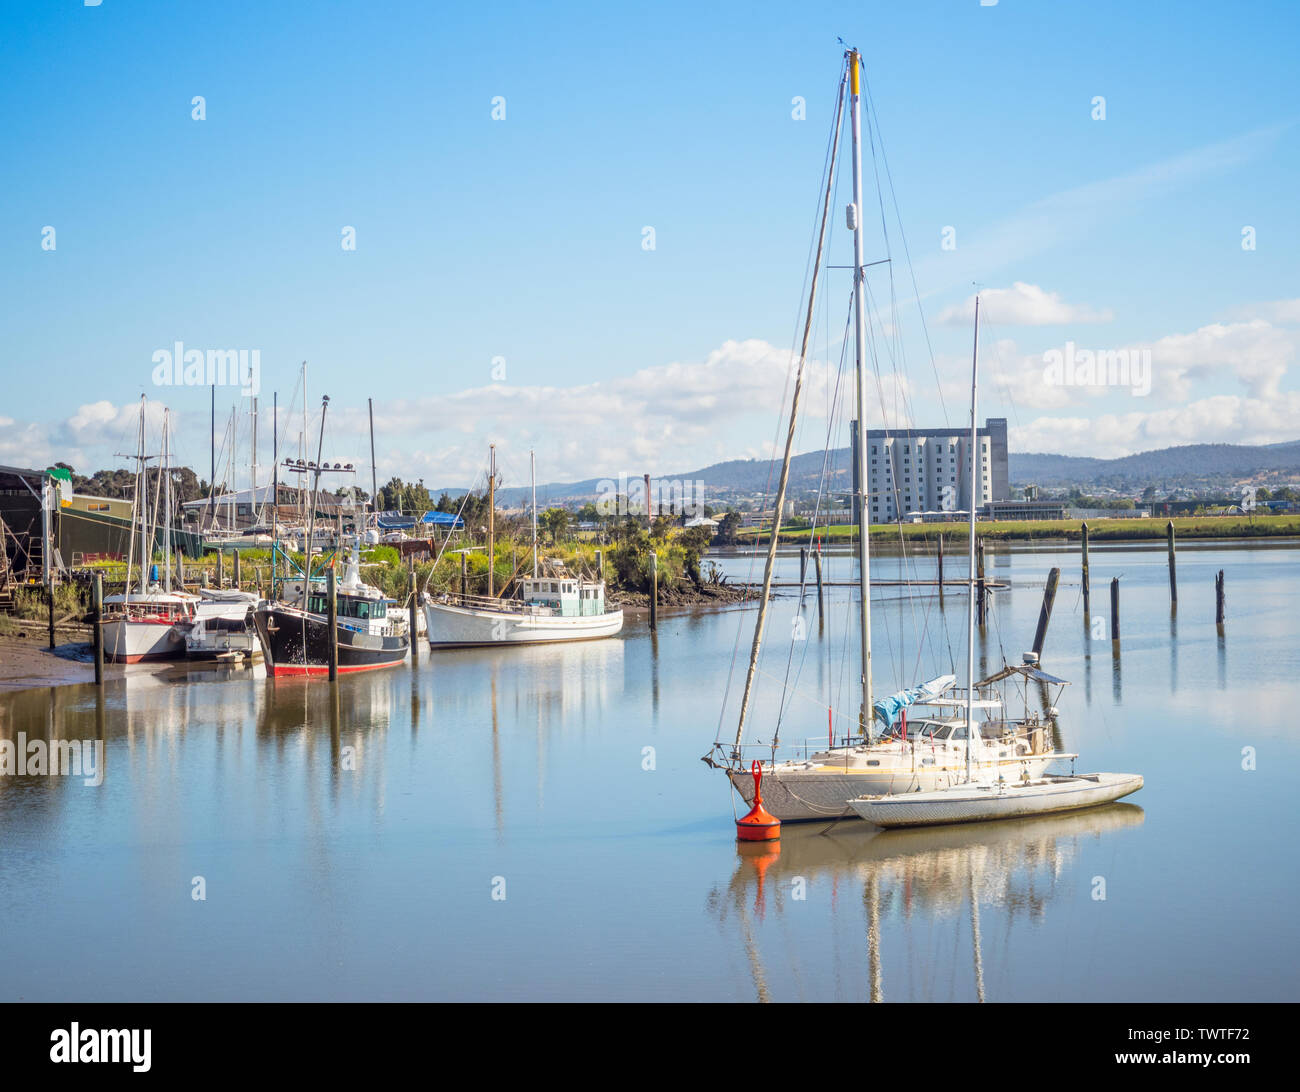 Boats and yachts moored in the Tamar River in Launceston, in Tasmania, Australia. Stock Photo